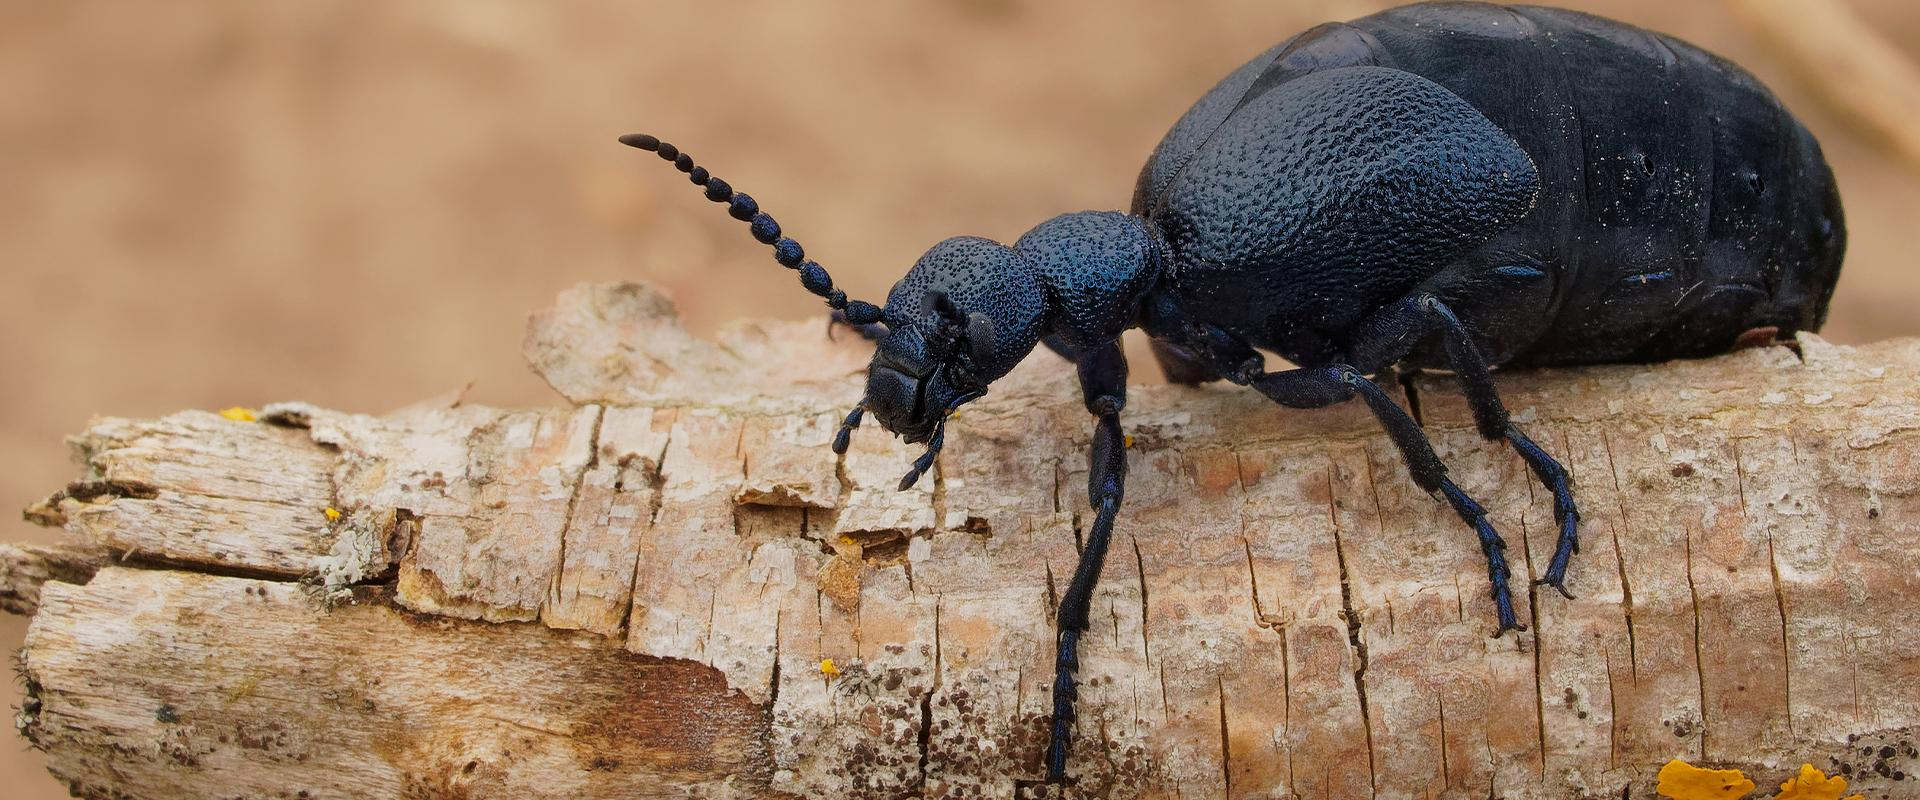 beetle on wood